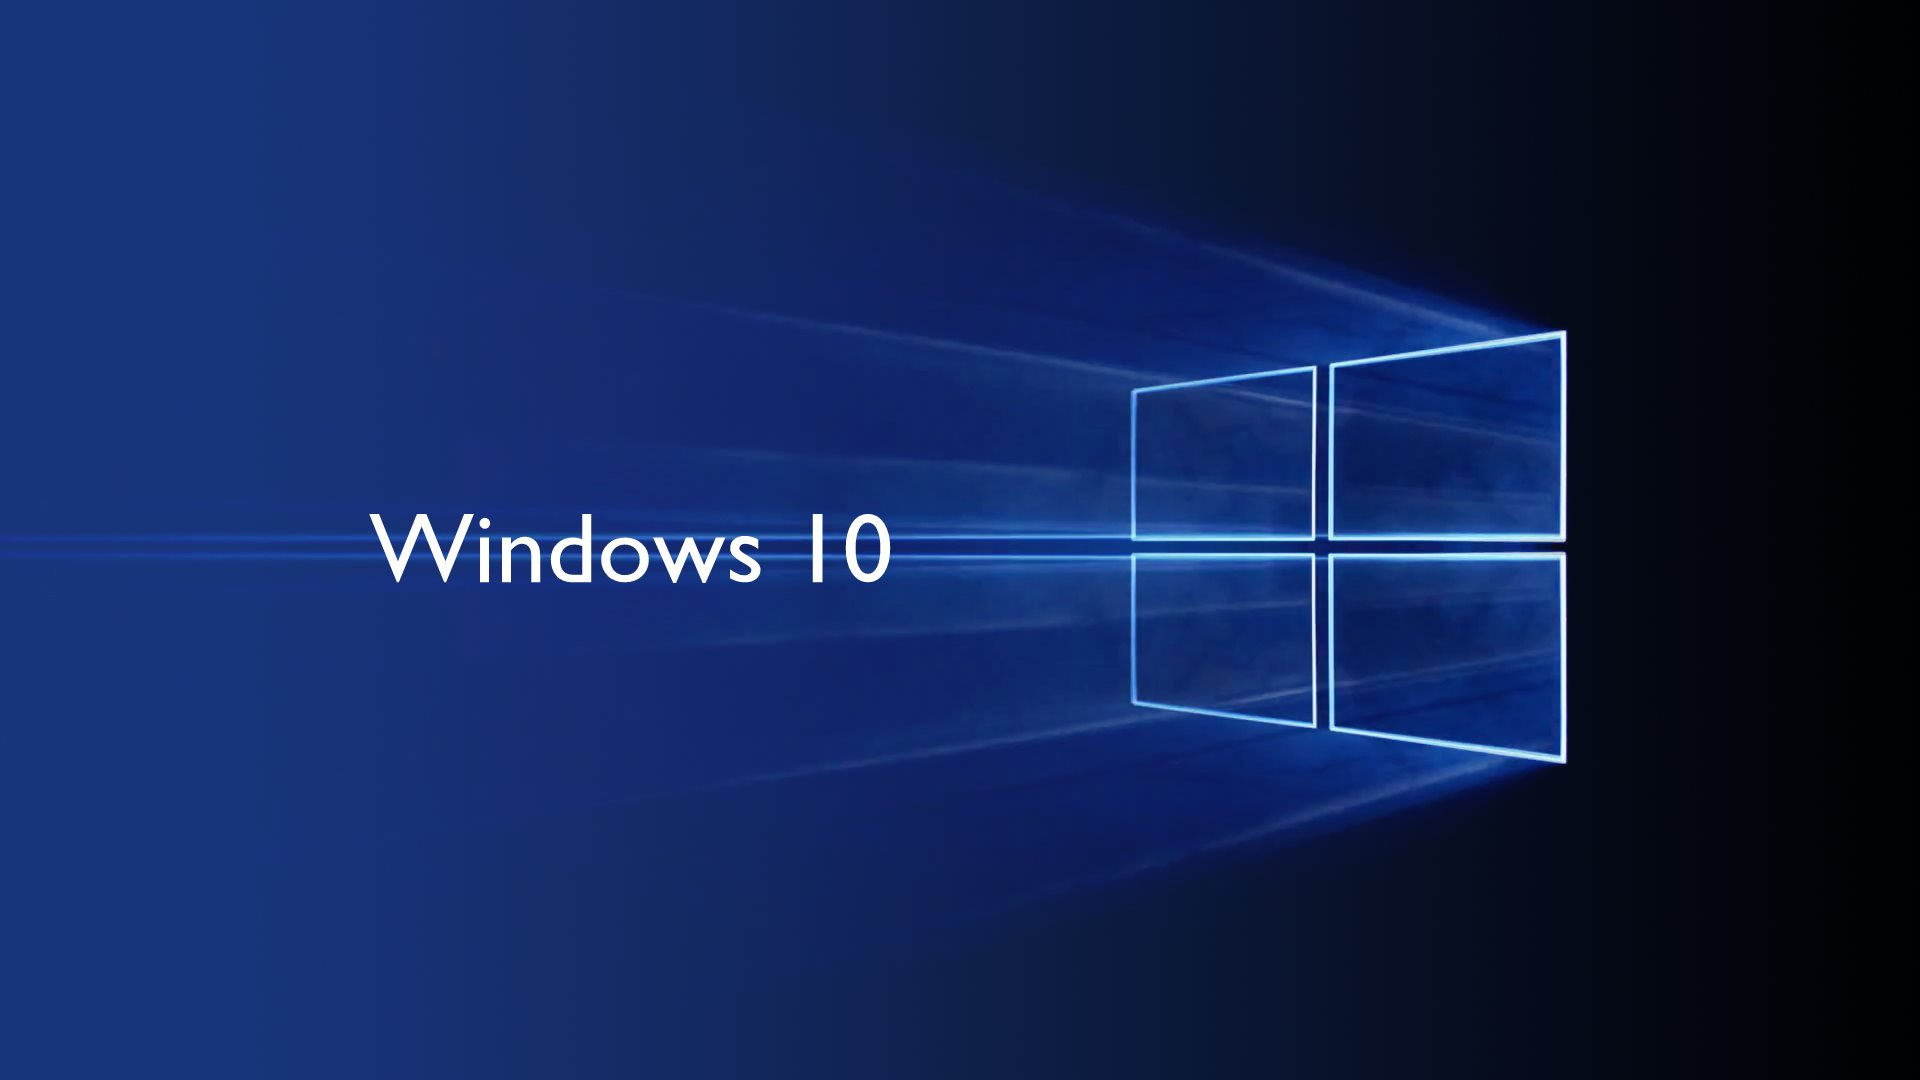 windows 10 - Windows 10 Güvenli Mod